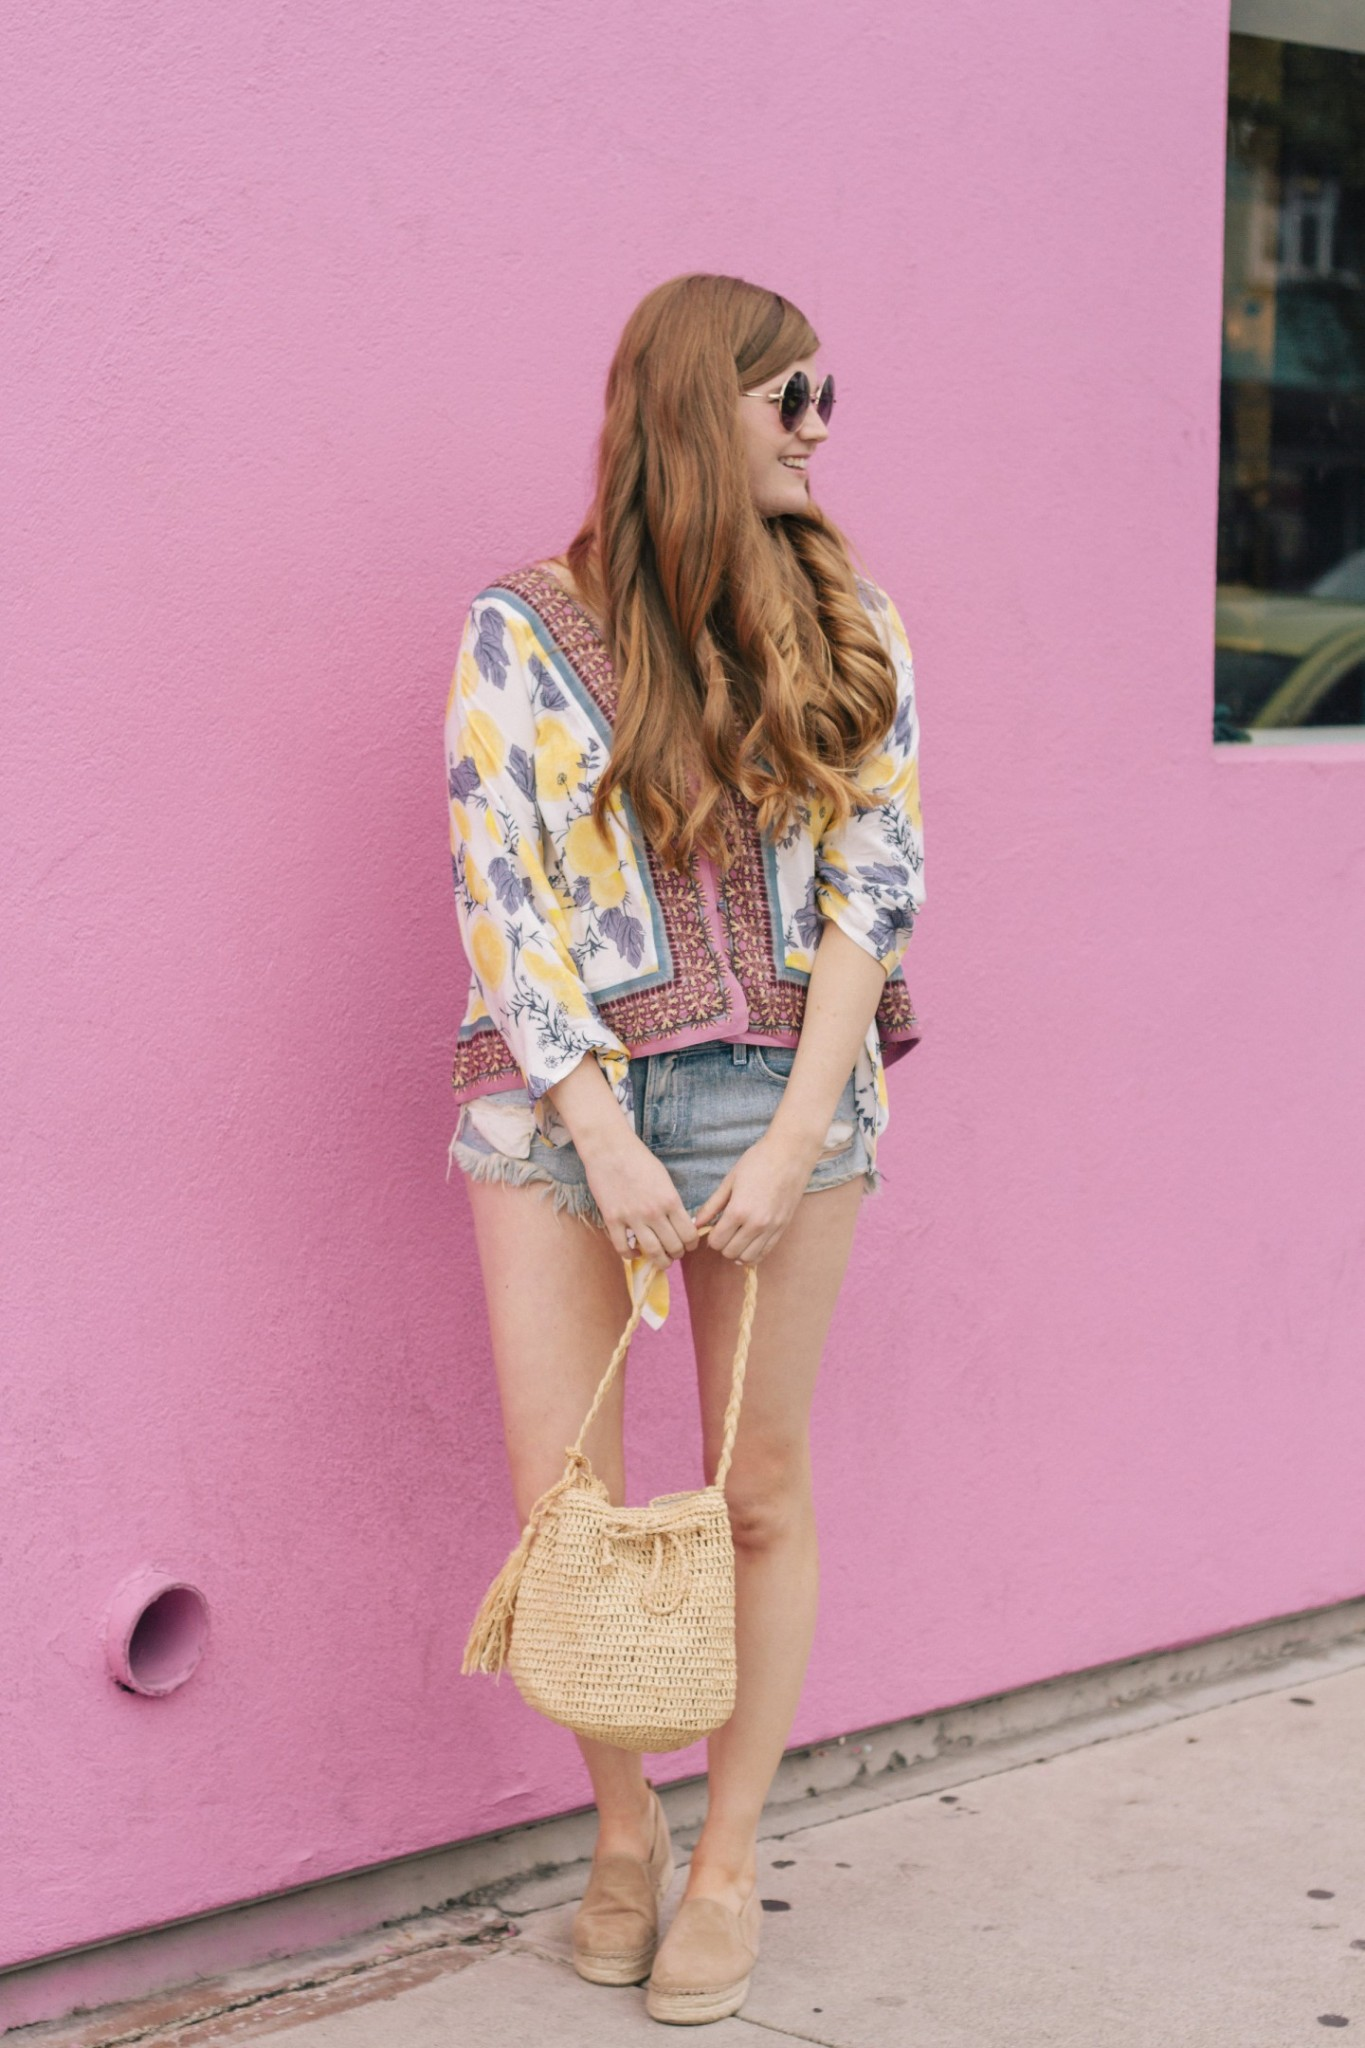 Lifestyle blogger Mollie Sheperdson styles a Free People lemon print top in West Hollywood